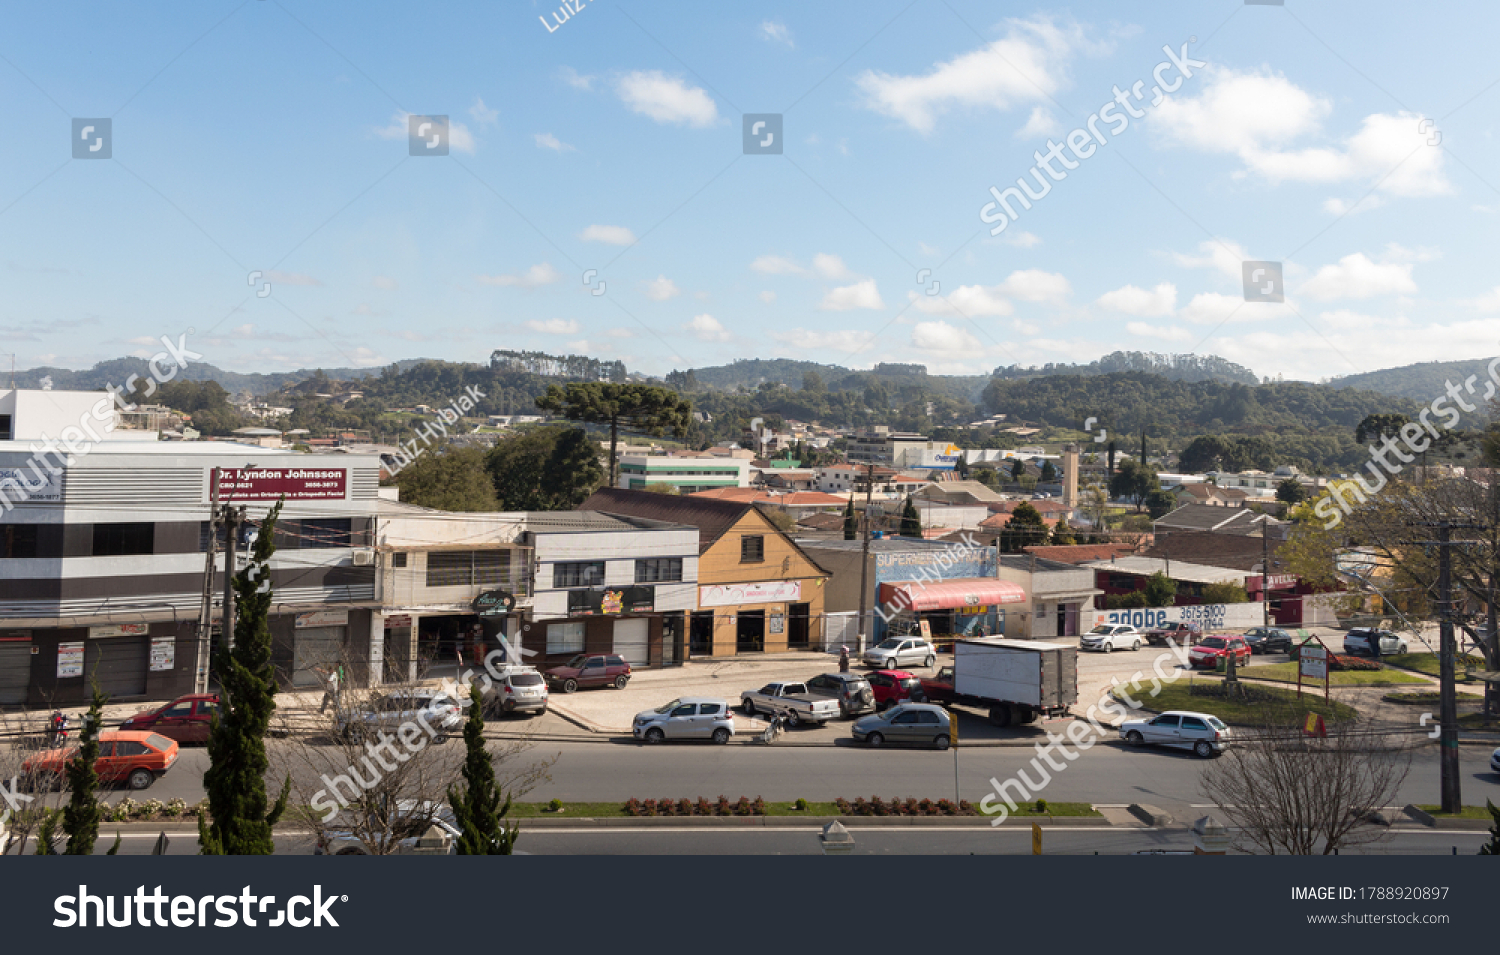 Colombo, Paraná, Brazil - August 01, 2020. City downtown with some small business on the main street. Trees and mountains in the horizon. Parked cars.